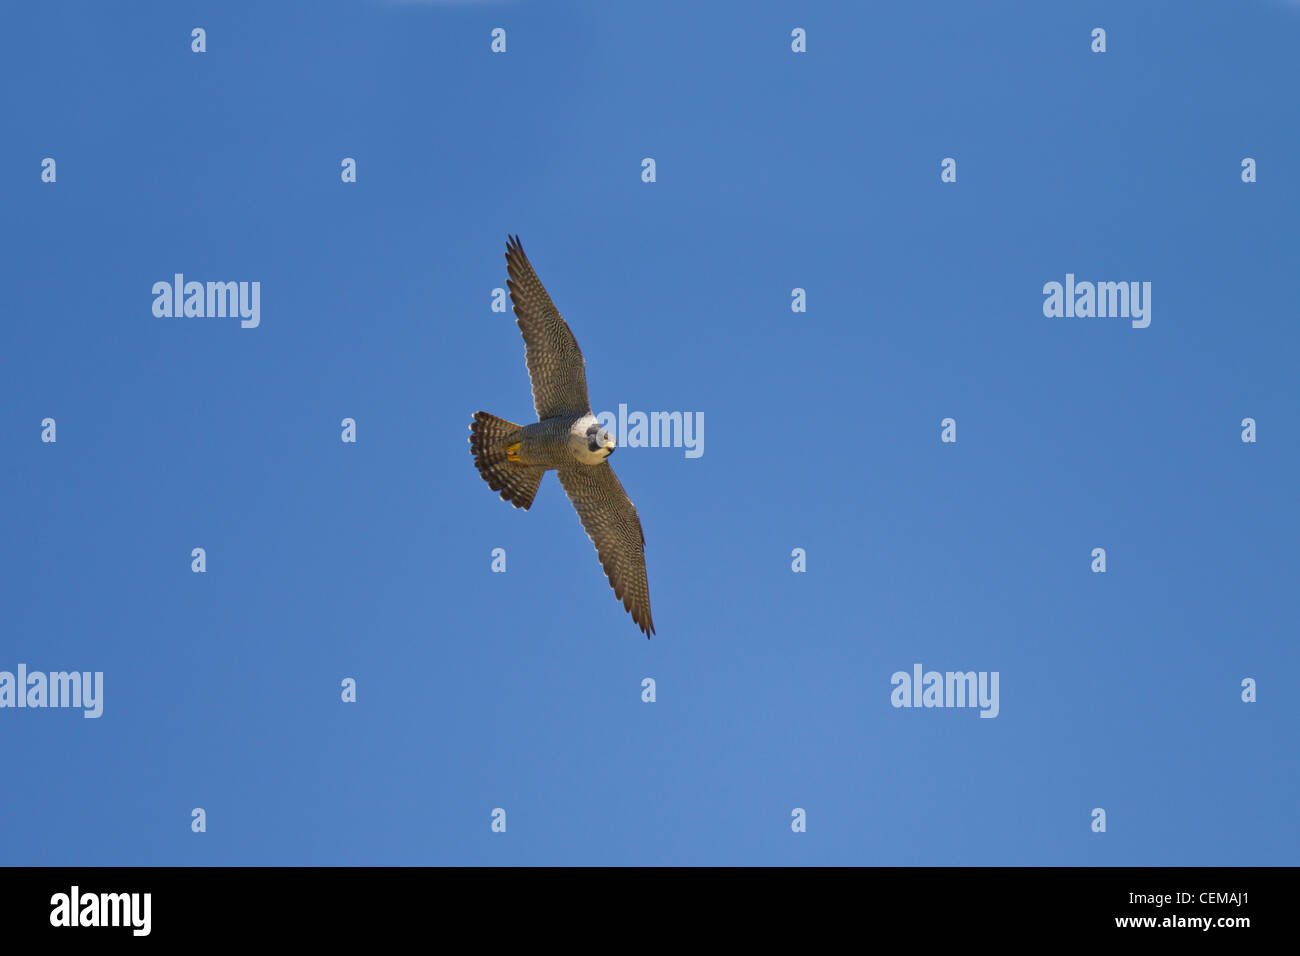 Wanderfalke, Falco peregrinus, peregrine falcon Stock Photo